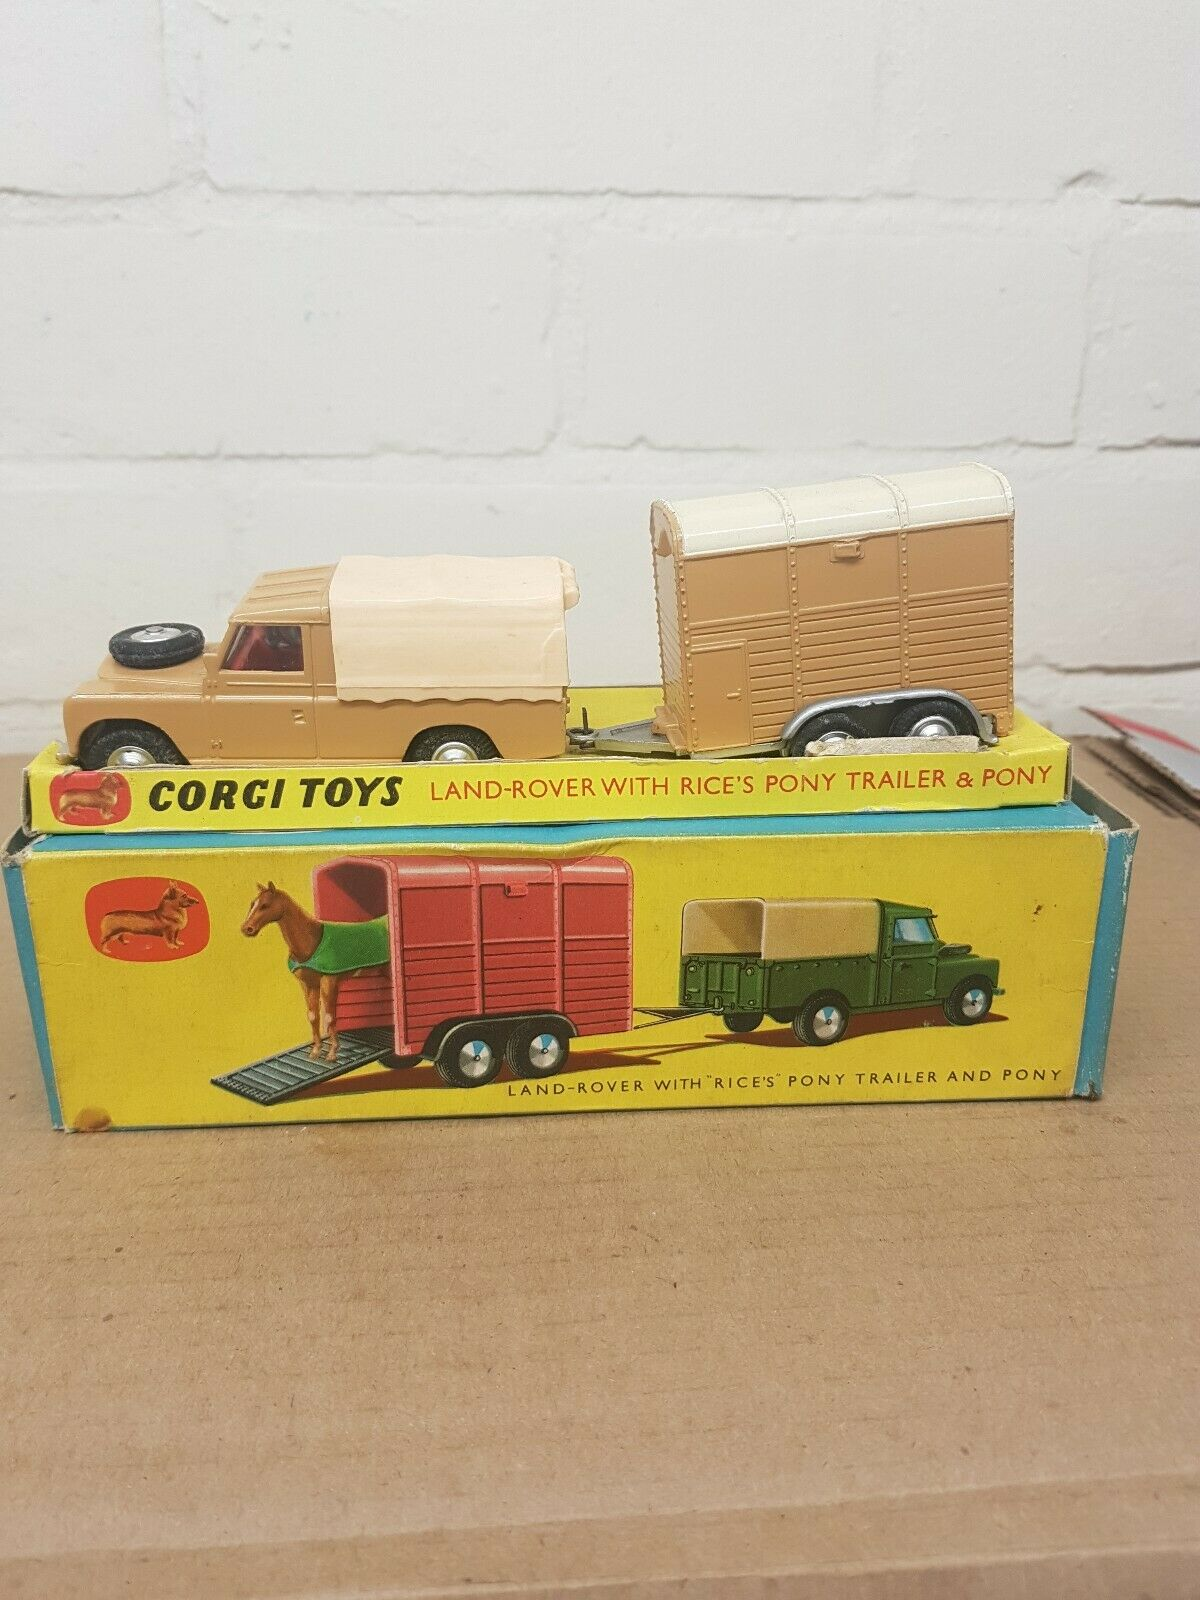 CORGI GeschenkSET NO 2 LAND-ROVER WITH  RICES  PONY TRAILER AND PONY